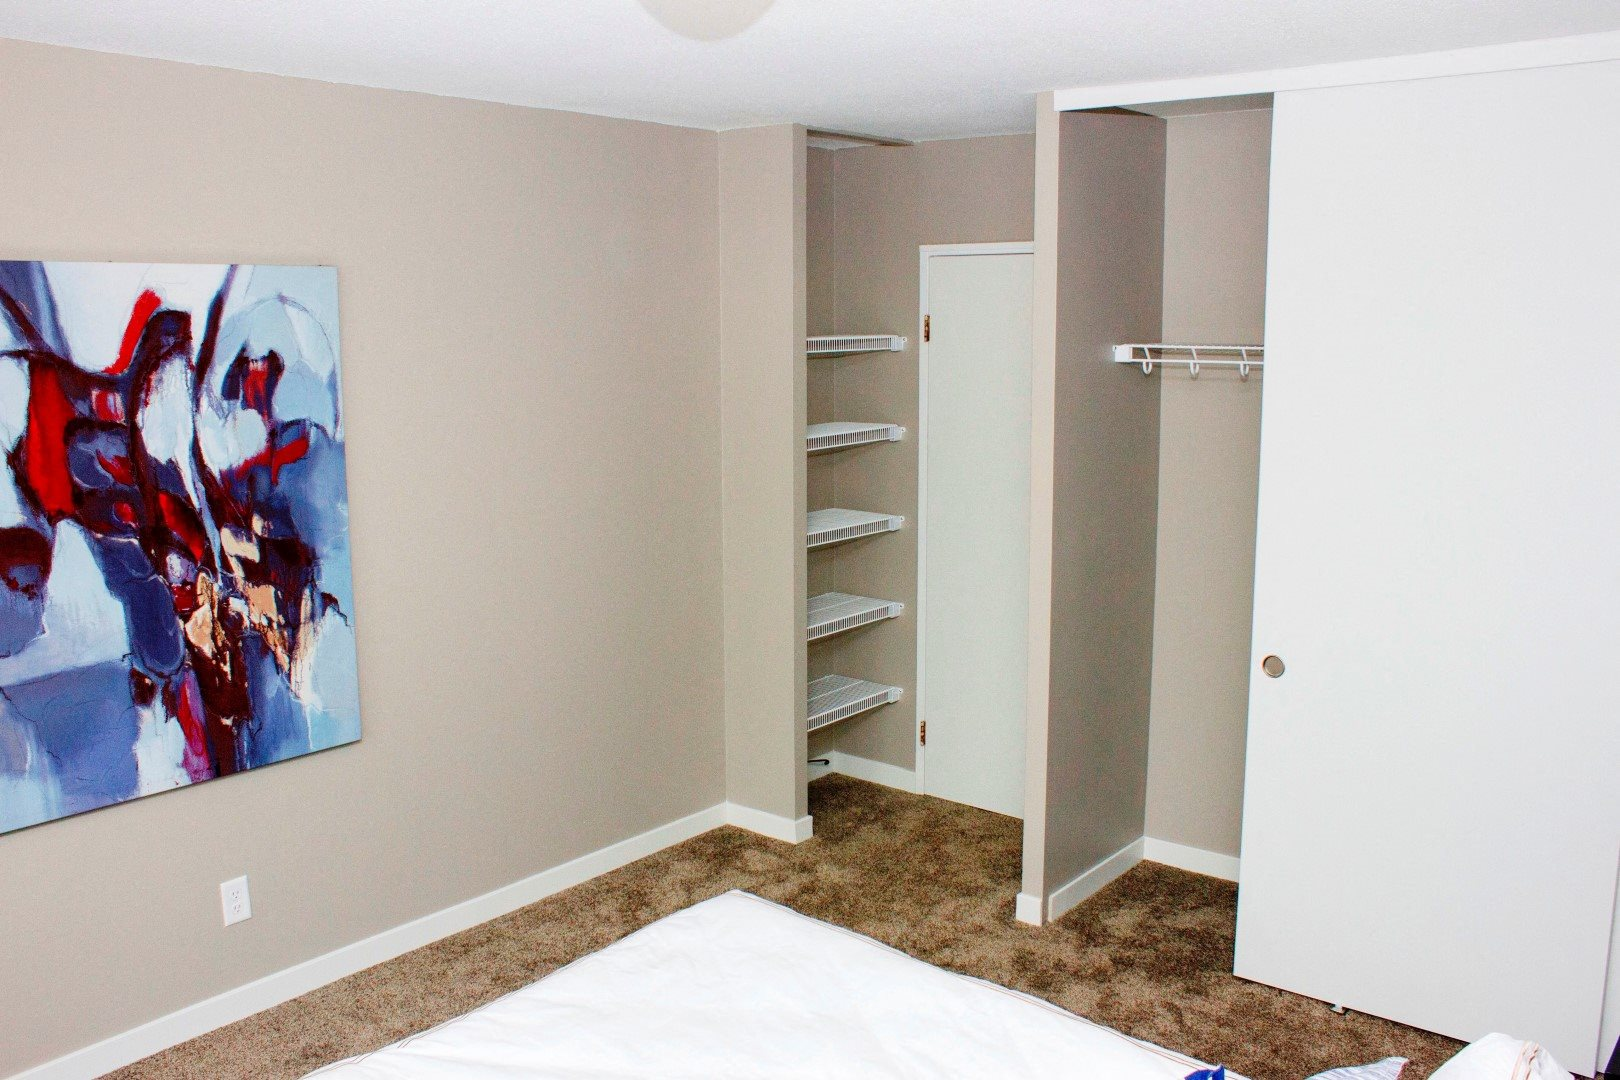 410 Apartments Model Closet Organizers